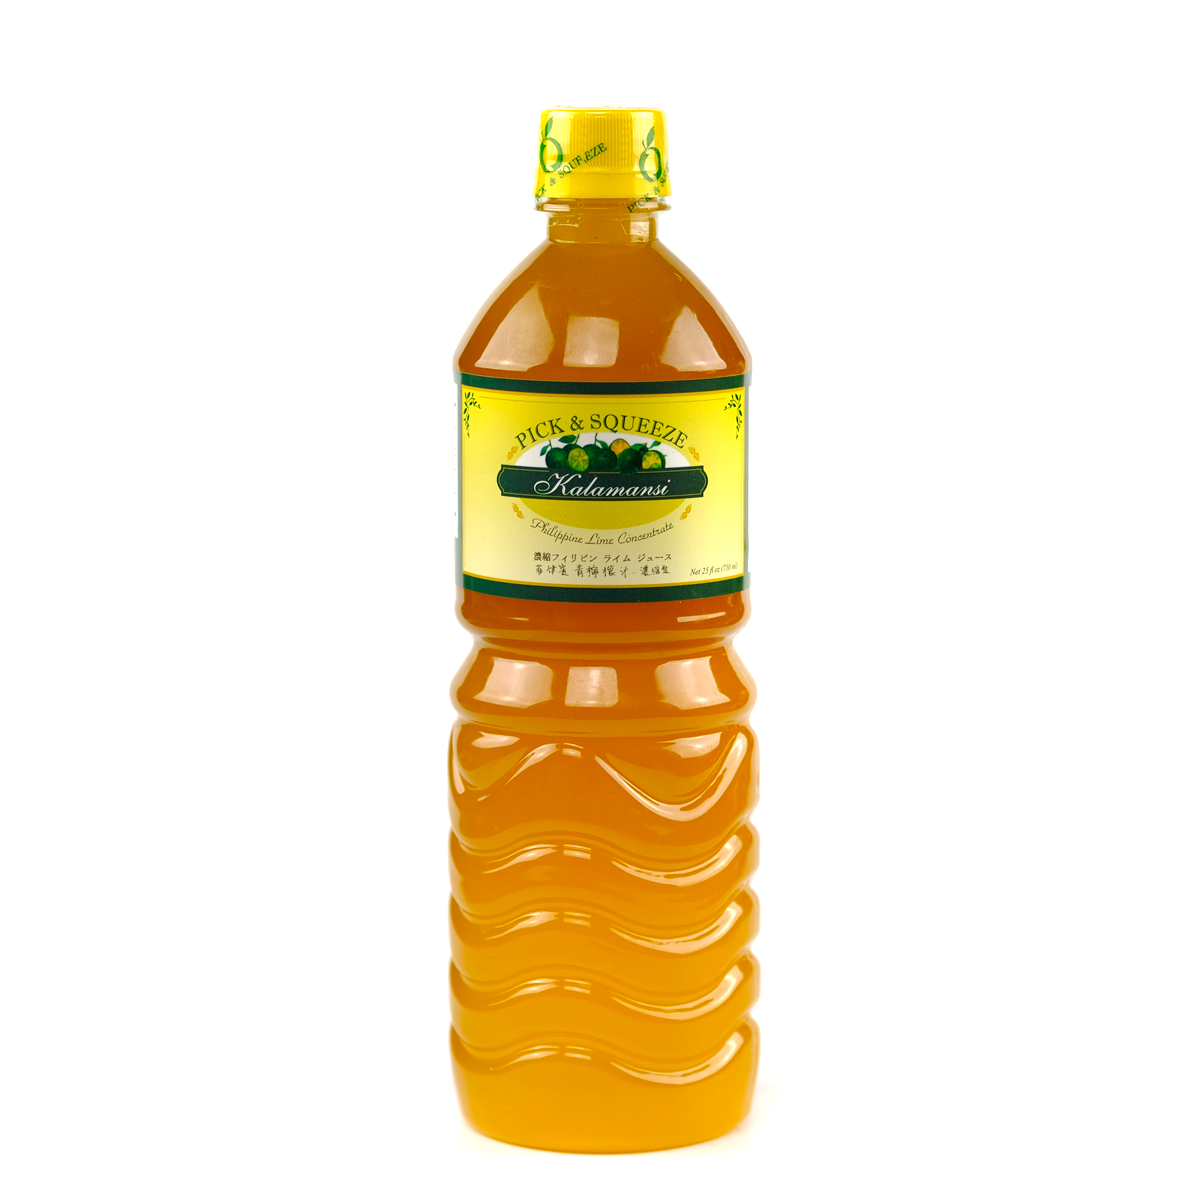 Pick and Squeeze Calamansi Juice Concentrate